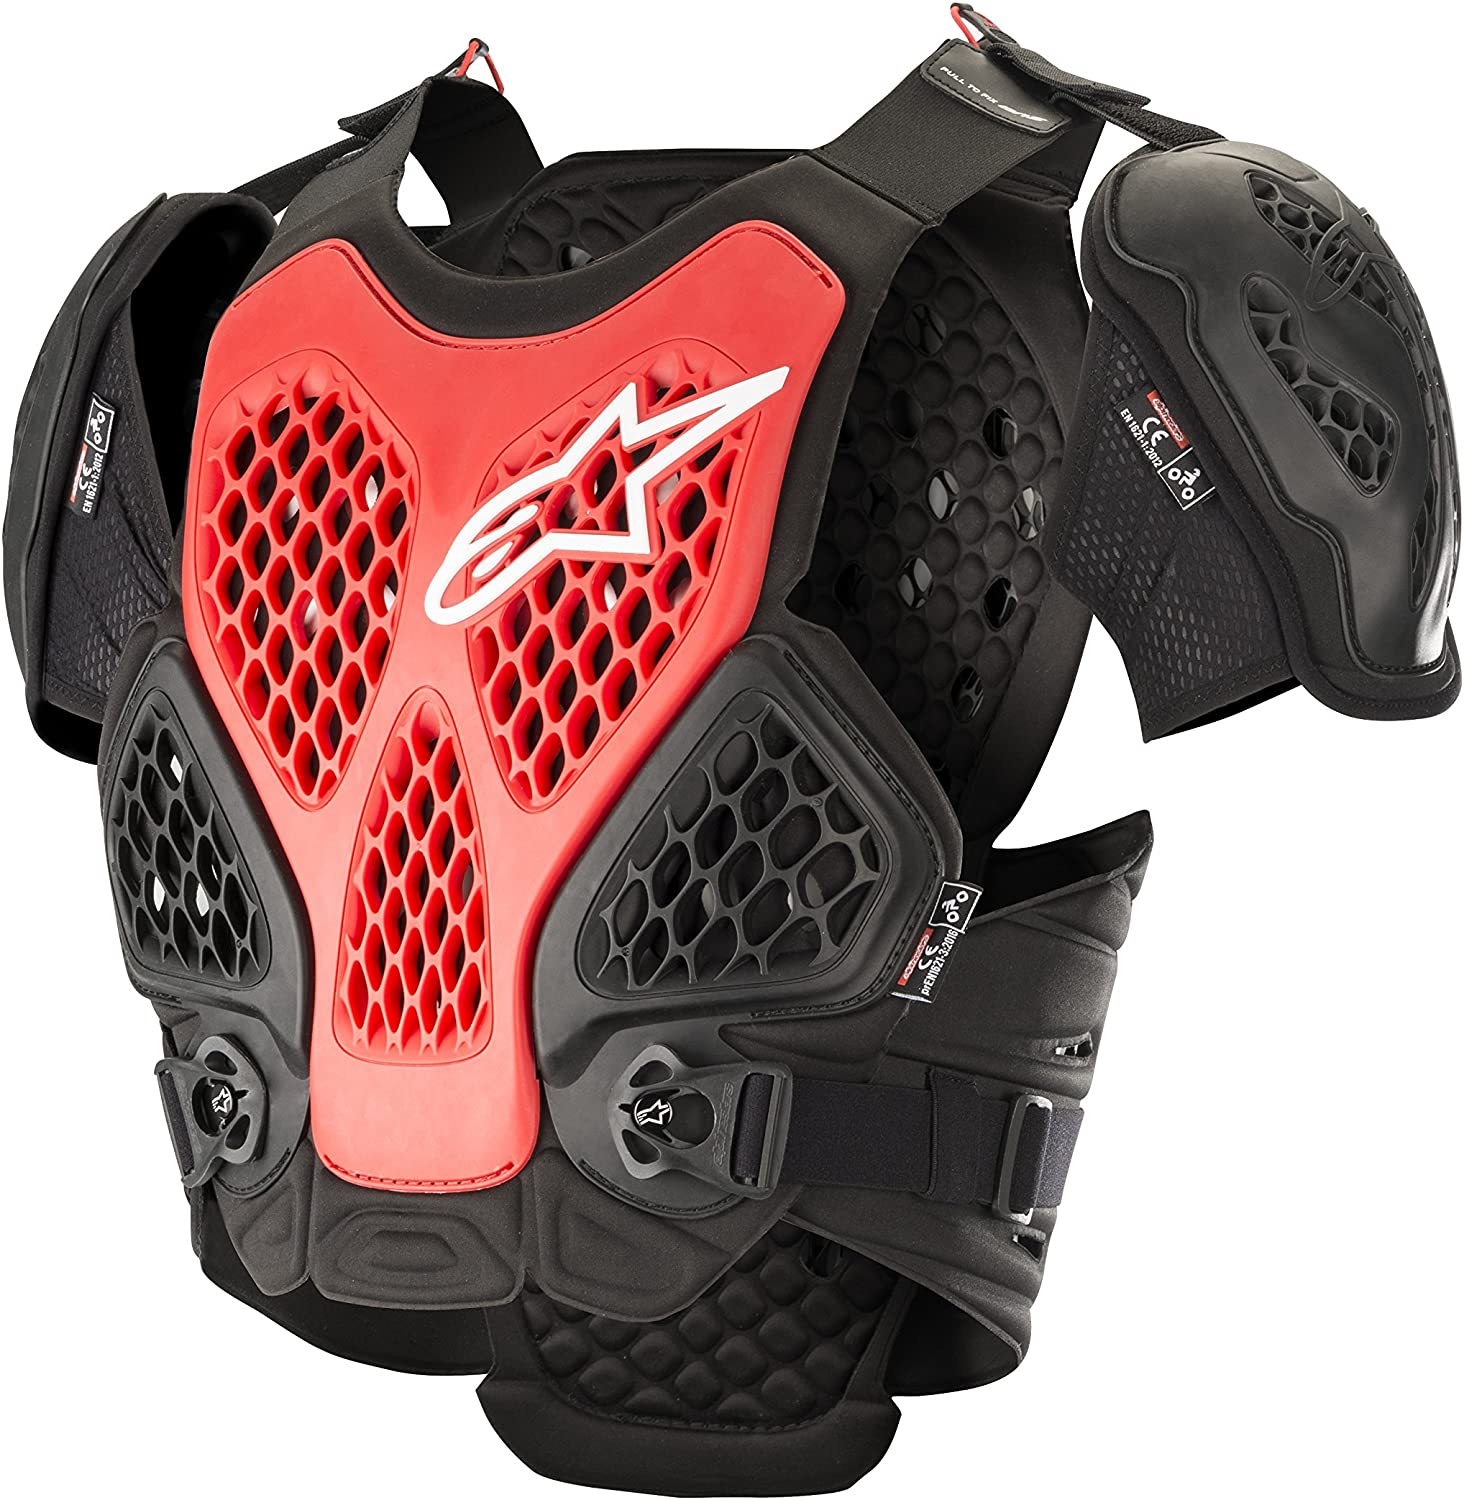 Alpinestars Bionic Motorcycle Chest Protector, Black/Red, Large/X-Large